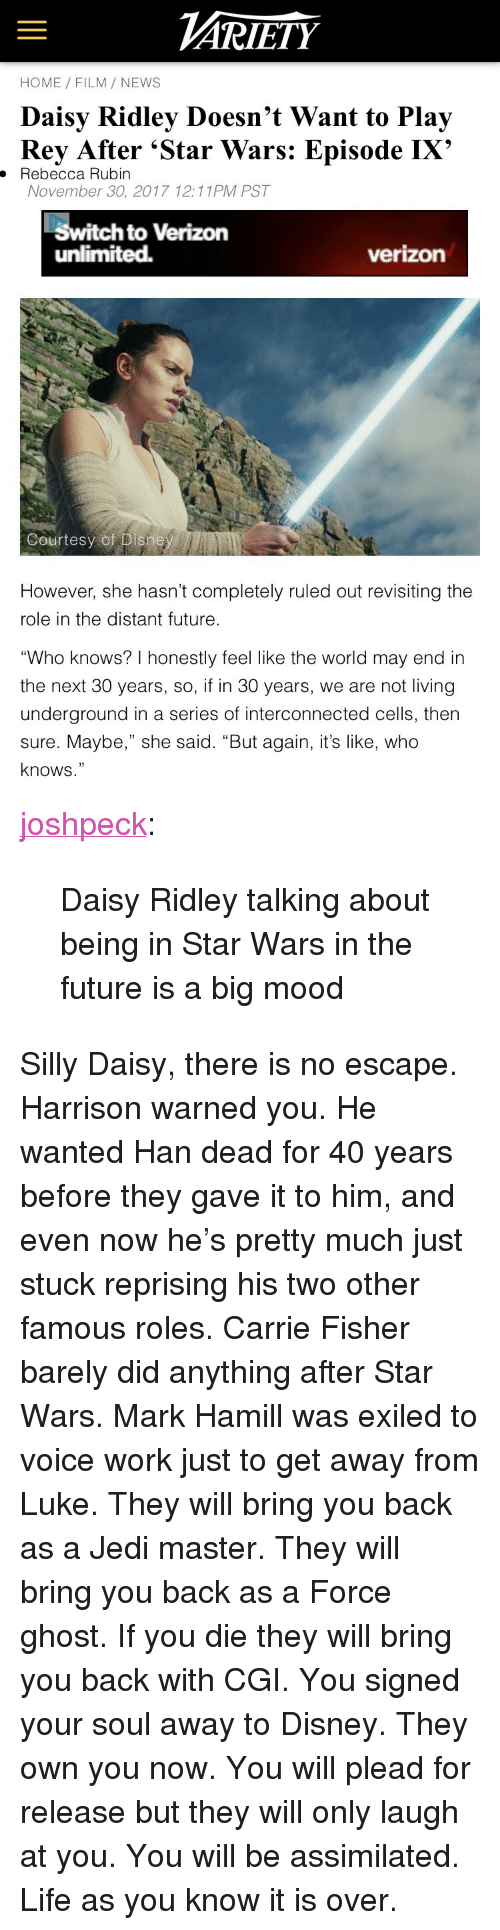 "Rubin: ARİETY  HOME FILM/ NEWS  Daisy Ridley Doesn't Want to Play  Rey After 'Star Wars: Episode IX'  . Rebecca Rubin  November 30, 2017 12:11PM PST  Switch to Verizon  unlimited.  verizon  Courtesy of Disne   However, she hasn't completely ruled out revisiting the  role in the distant future  ""Who knows? I honestly feel like the world may end in  the next 30 years, so, if in 30 years, we are not living  underground in a series of interconnected cells, then  sure. Maybe,"" she said. ""But again, it's like, who  knows."" <p><a href=""http://joshpeckofficial.com/post/168948838043/daisy-ridley-talking-about-being-in-star-wars-in"" class=""tumblr_blog"">joshpeck</a>:</p>  <blockquote><p>Daisy Ridley talking about being in Star Wars in the future is a big mood</p></blockquote>  <p>Silly Daisy, there is no escape. Harrison warned you. He wanted Han dead for 40 years before they gave it to him, and even now he's pretty much just stuck reprising his two other famous roles. Carrie Fisher barely did anything after Star Wars. Mark Hamill was exiled to voice work just to get away from Luke. They will bring you back as a Jedi master. They will bring you back as a Force ghost. If you die they will bring you back with CGI. You signed your soul away to Disney. They own you now. You will plead for release but they will only laugh at you. You will be assimilated. Life as you know it is over.</p>"